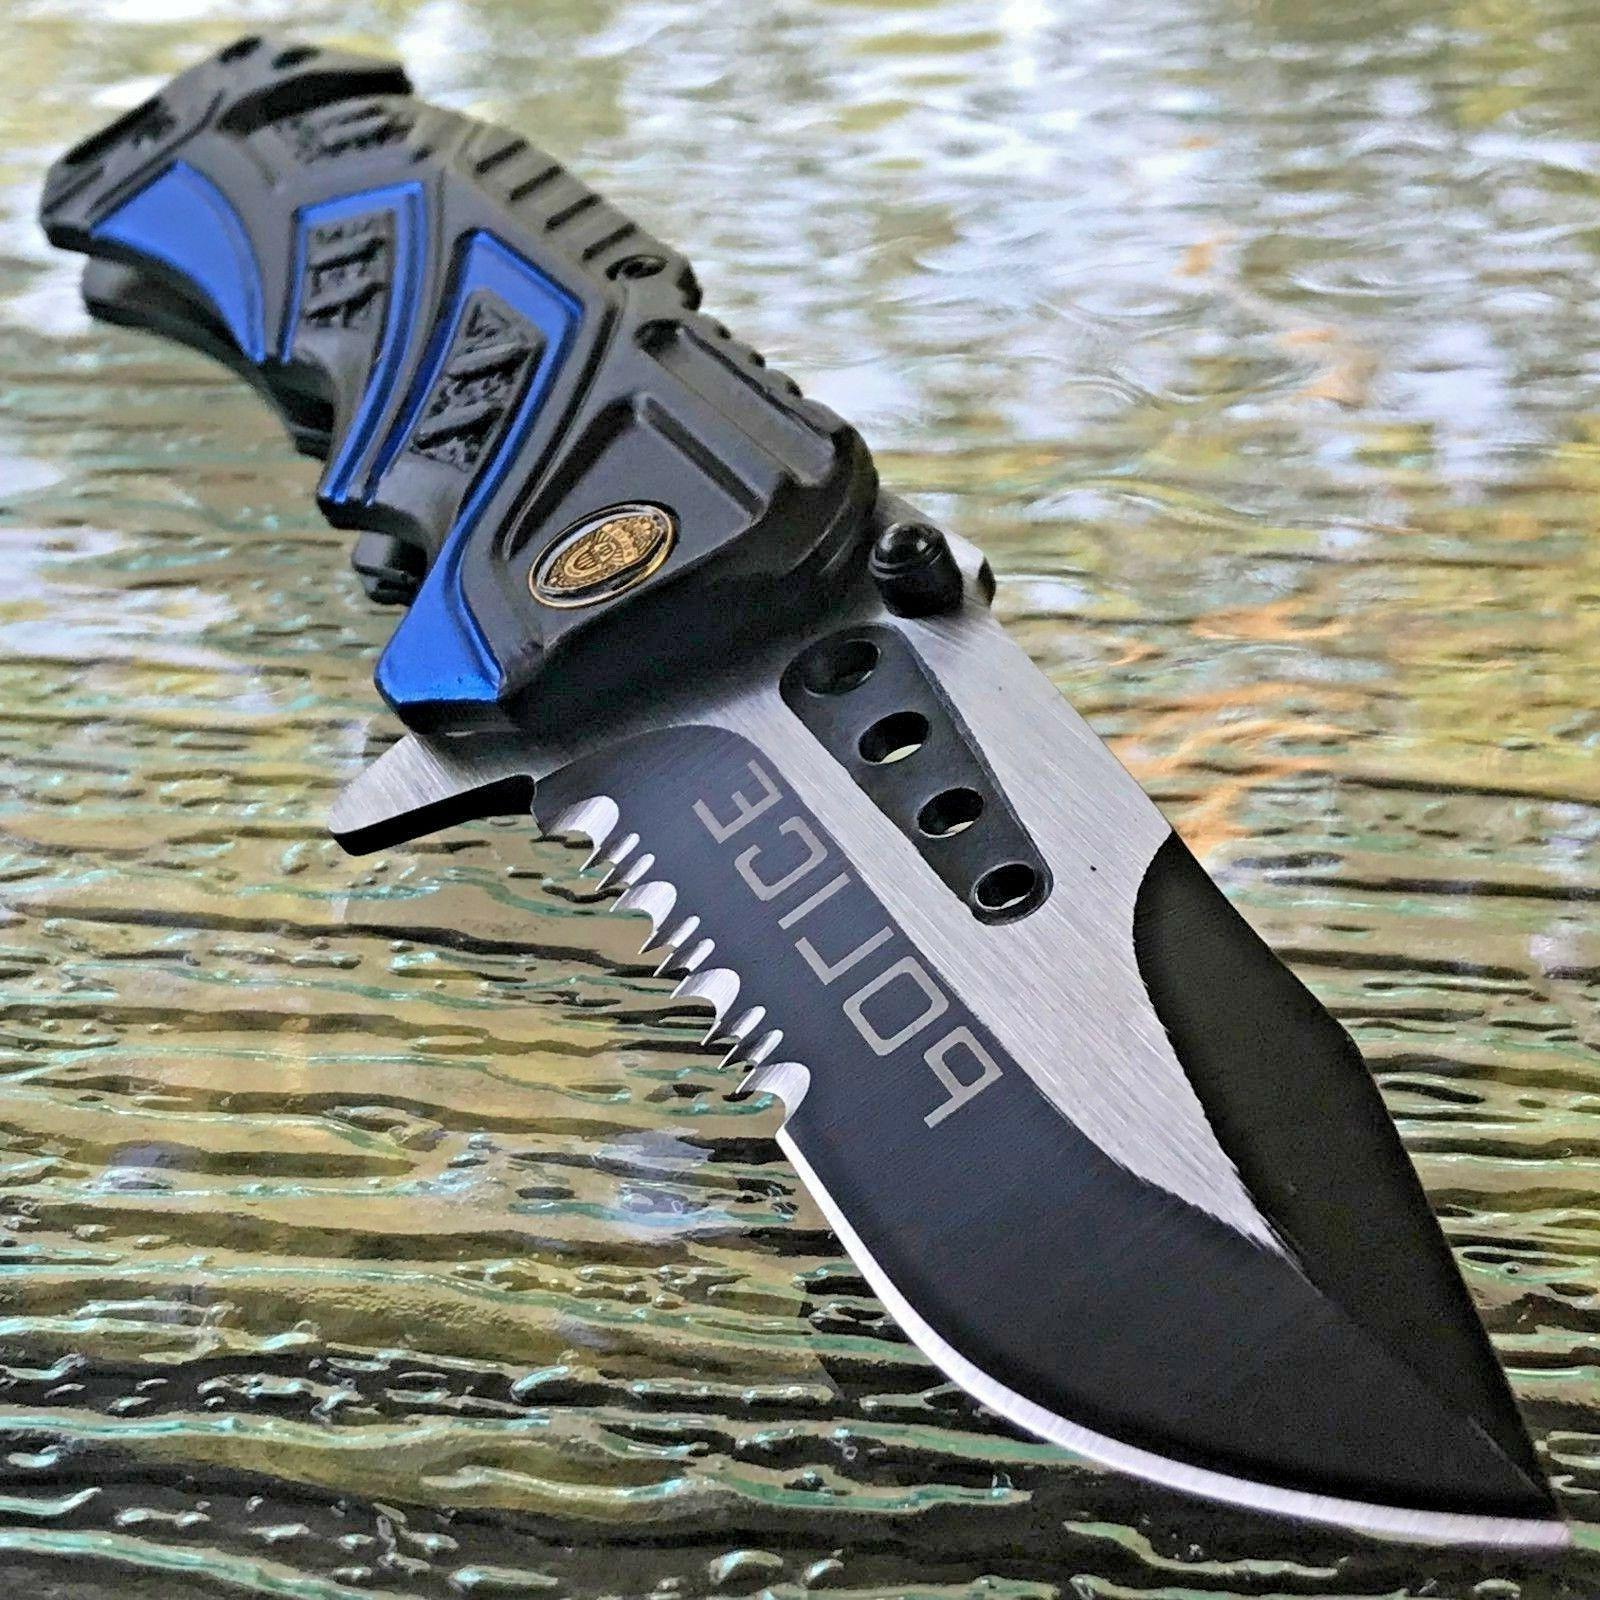 MTECH USA SPRING TACTICAL POCKET KNIFE 7.5""